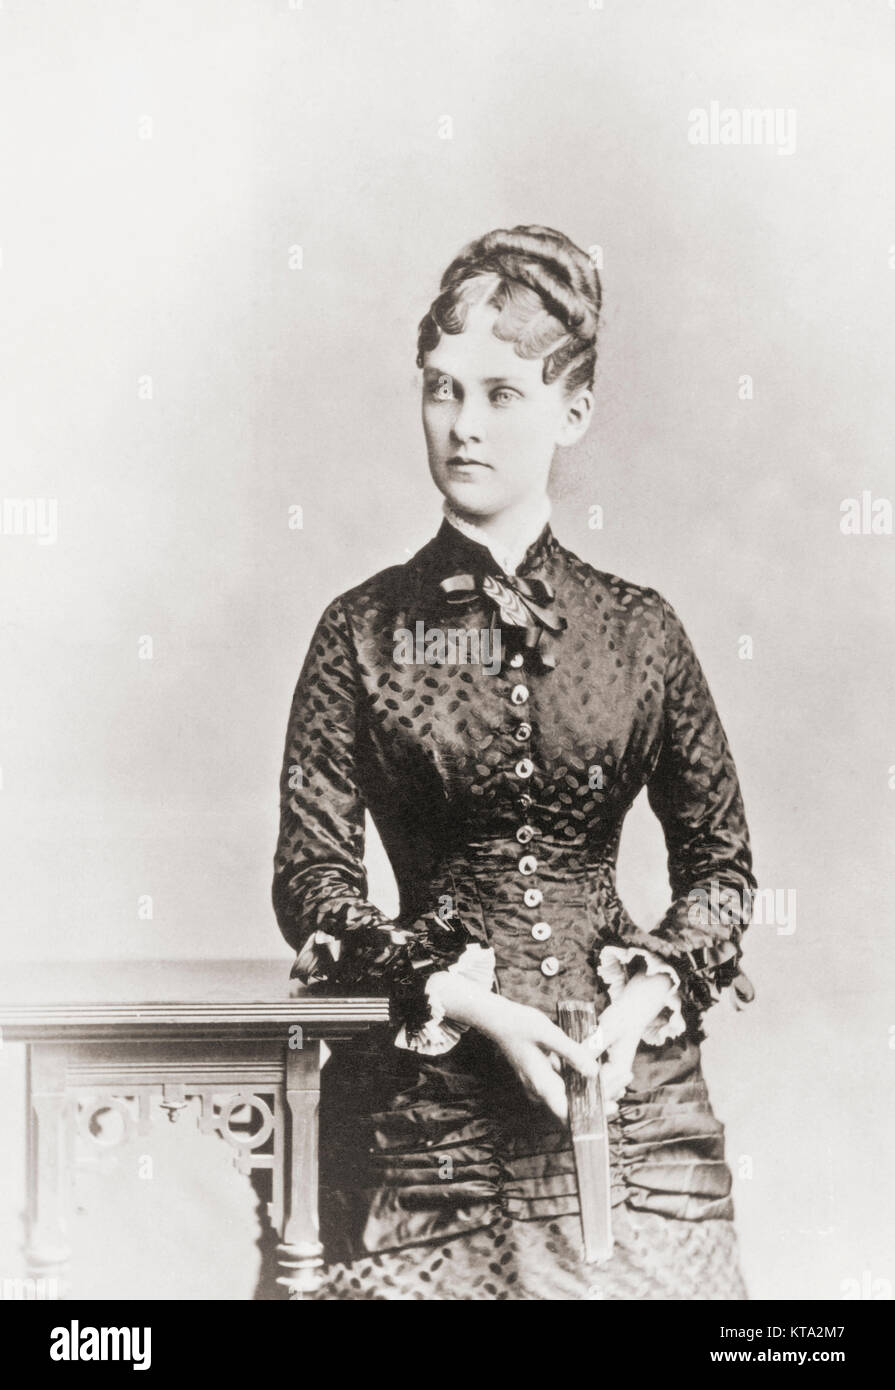 Alice Hathaway Lee Roosevelt, 1861-1884, first wife of President Theodore Roosevelt. - Stock Image